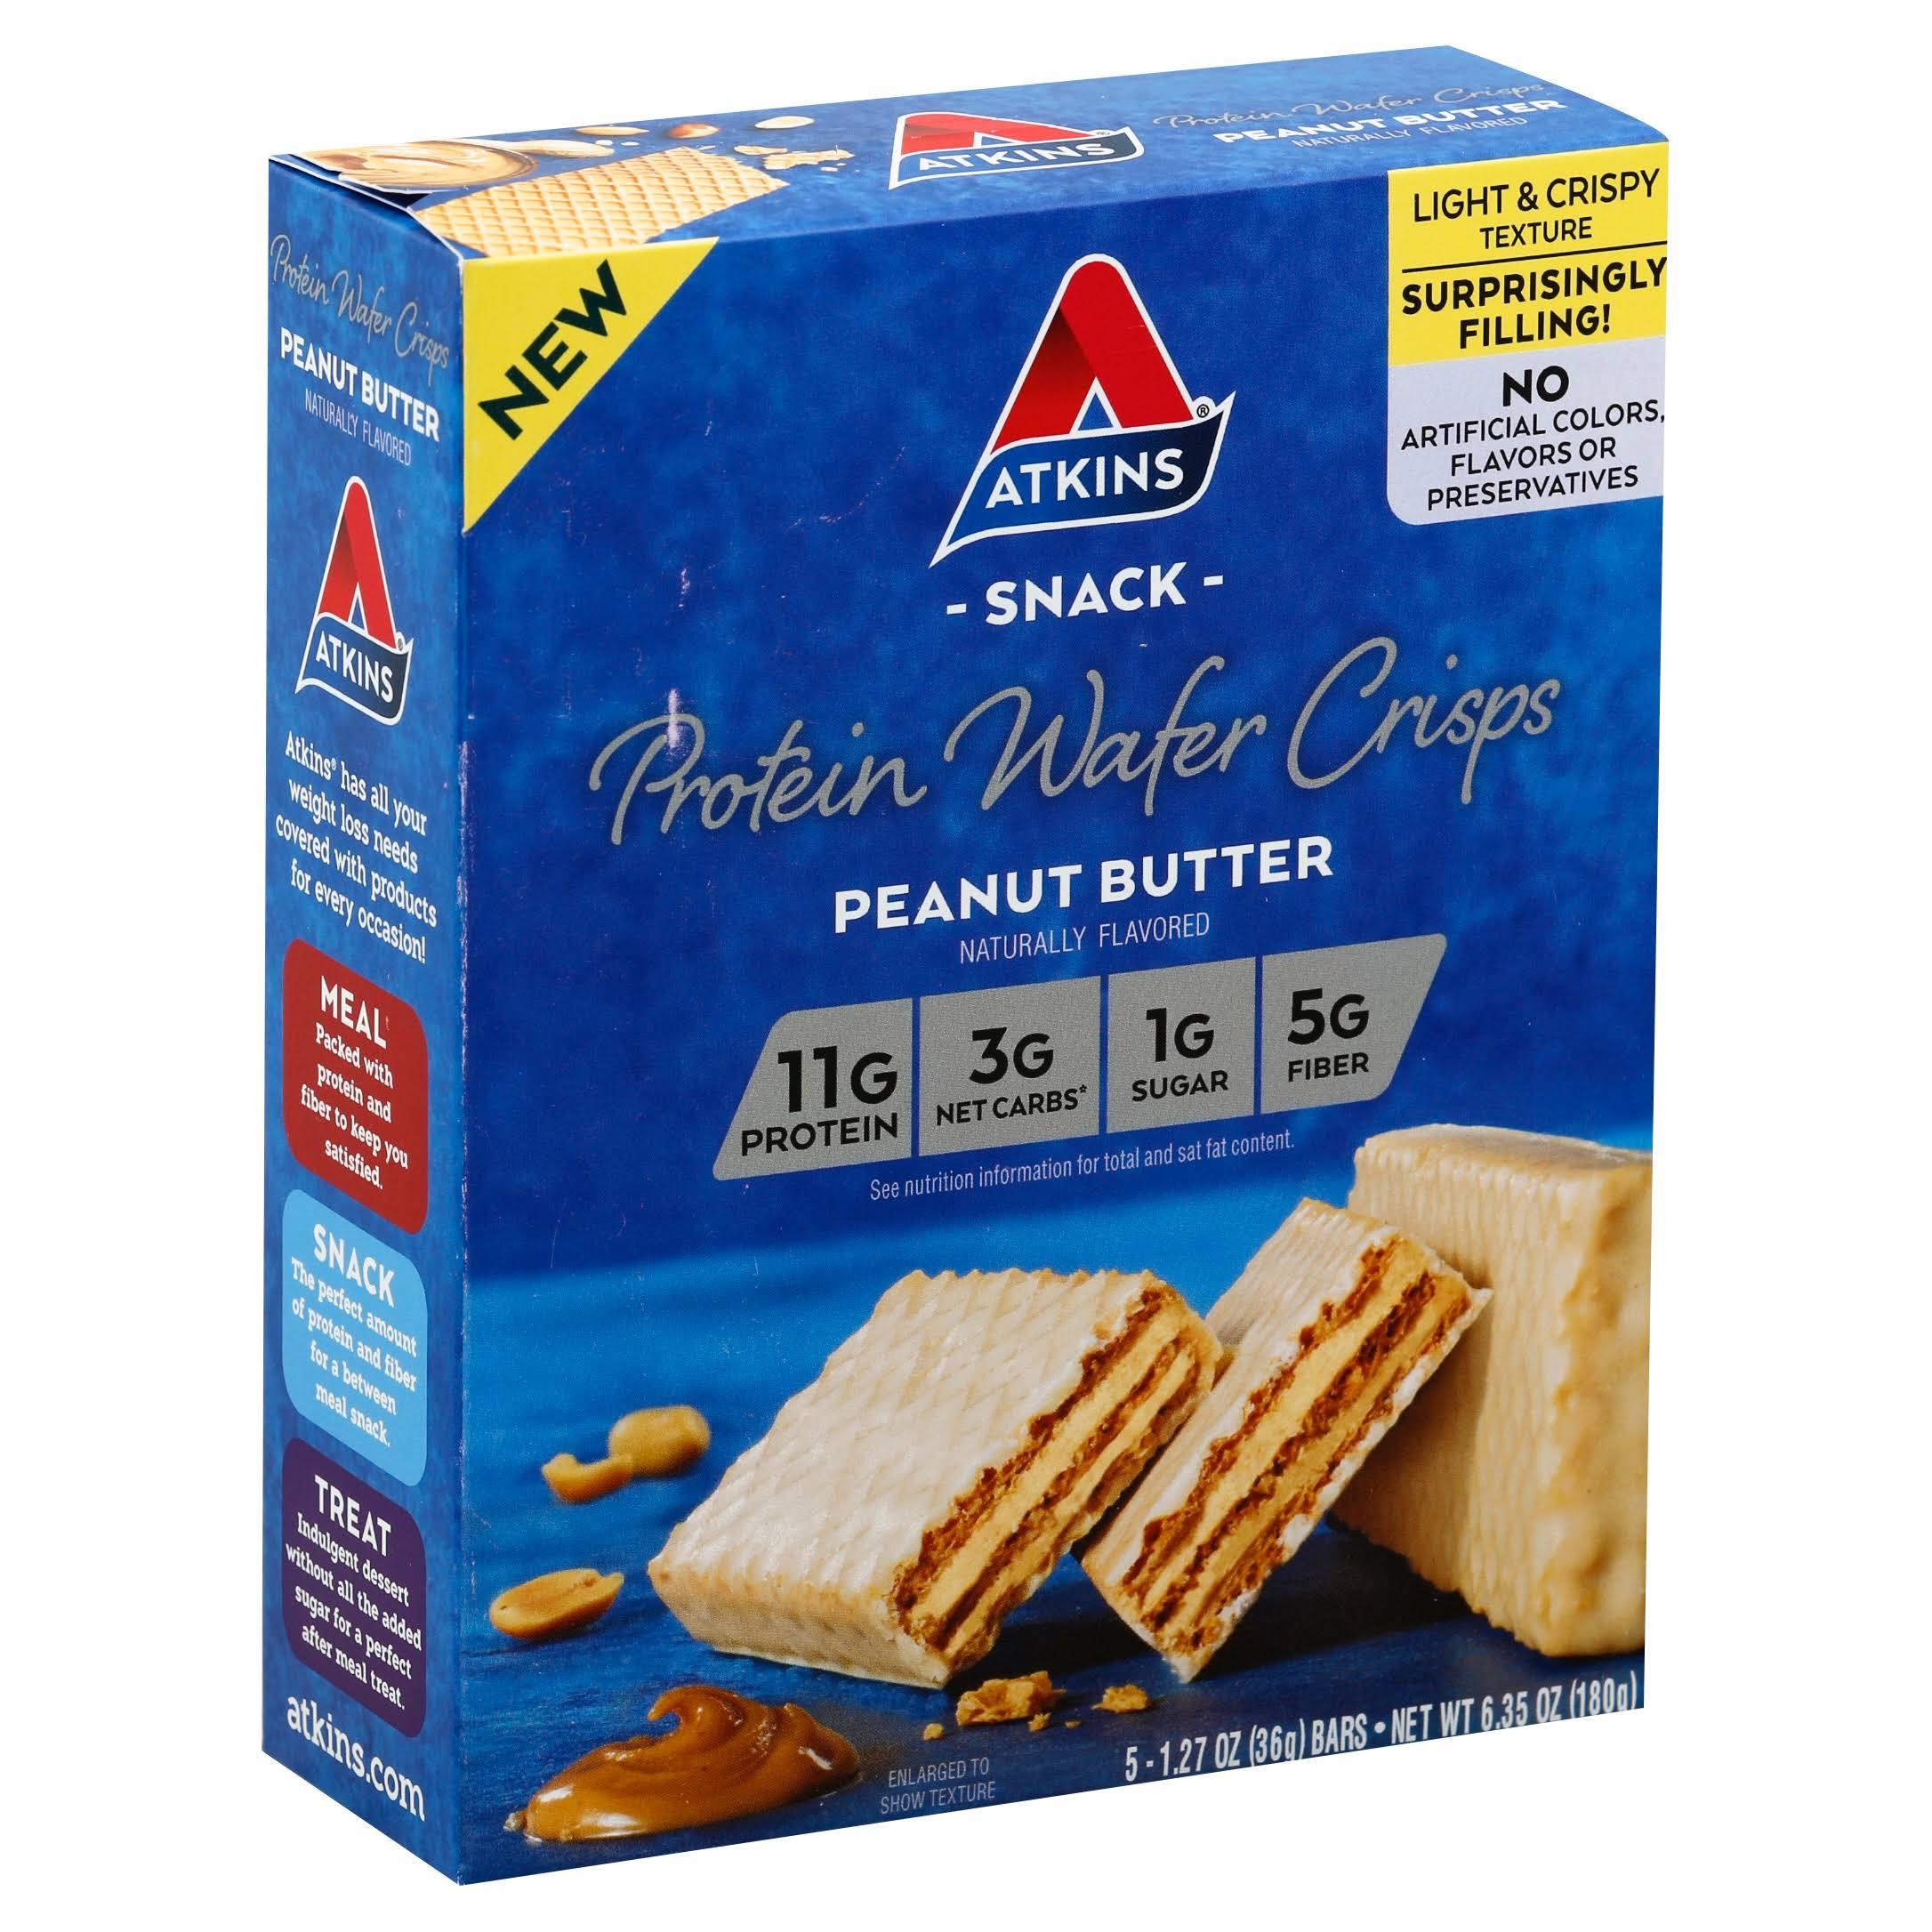 Atkins Protein Wafer Crisps - Peanut Butter, 5ct